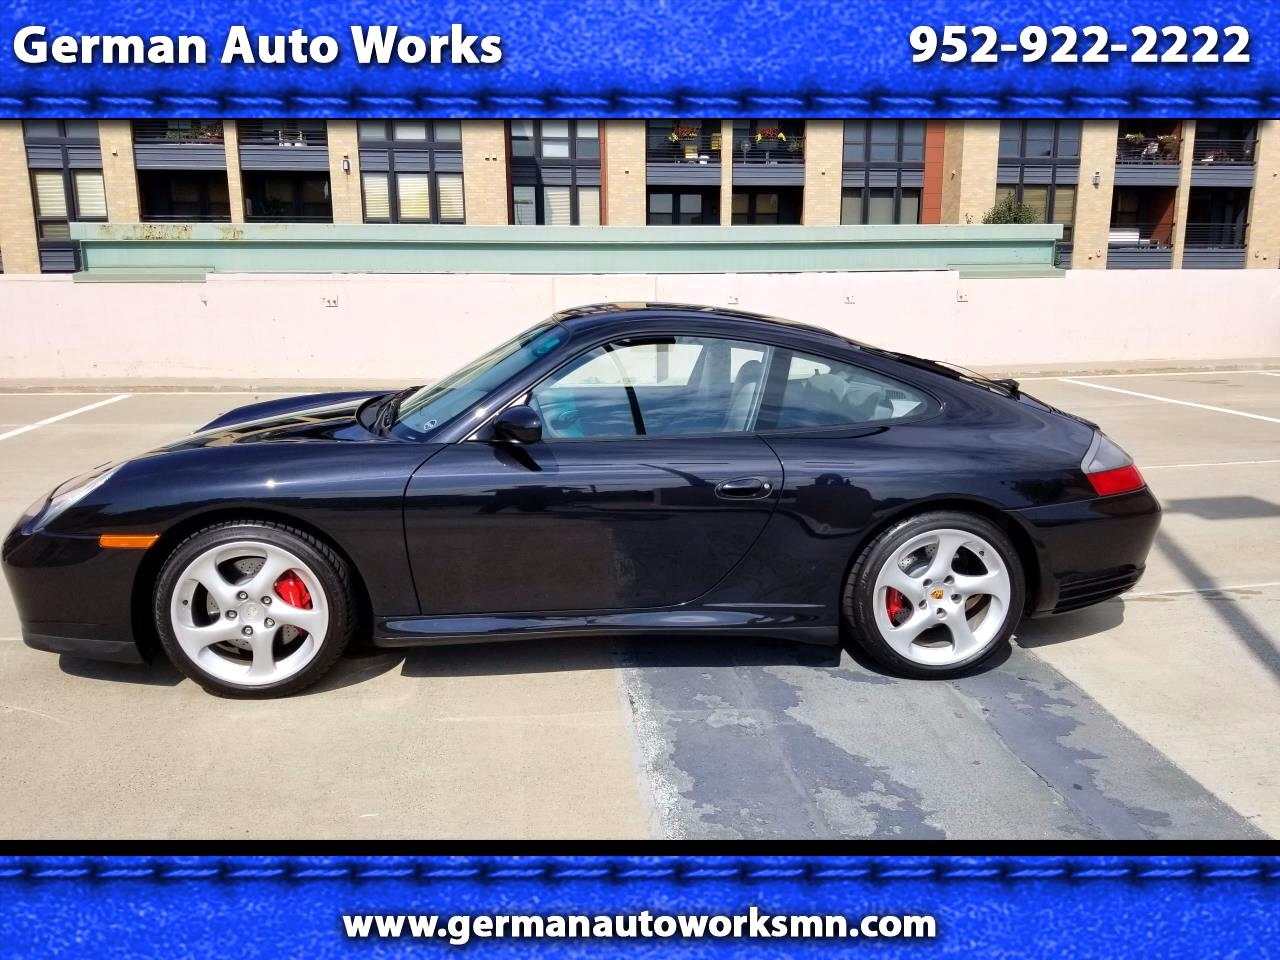 2004 Porsche 911 2dr Cpe Carrera 4S 6-Spd Manual